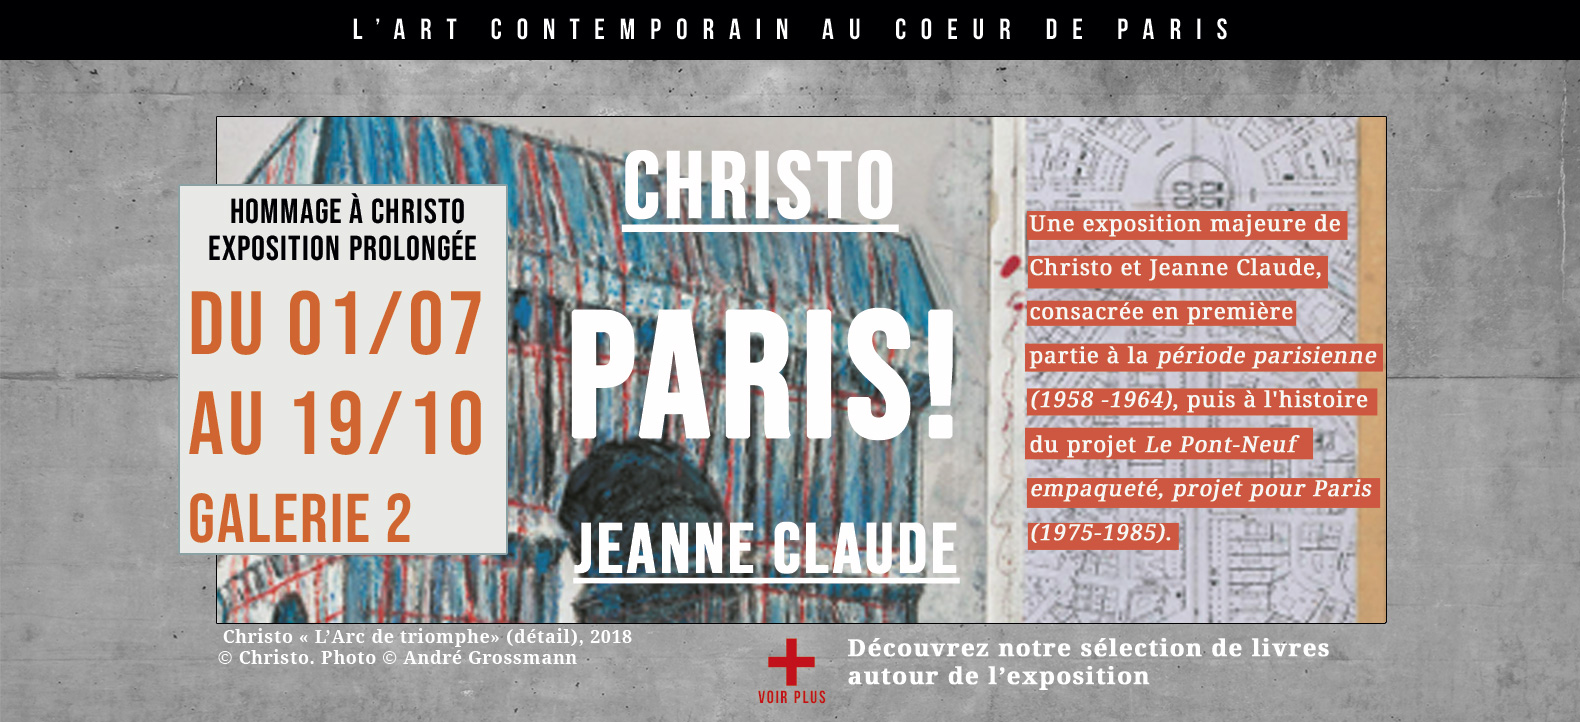 Christo - Jeanne Claude - Paris!